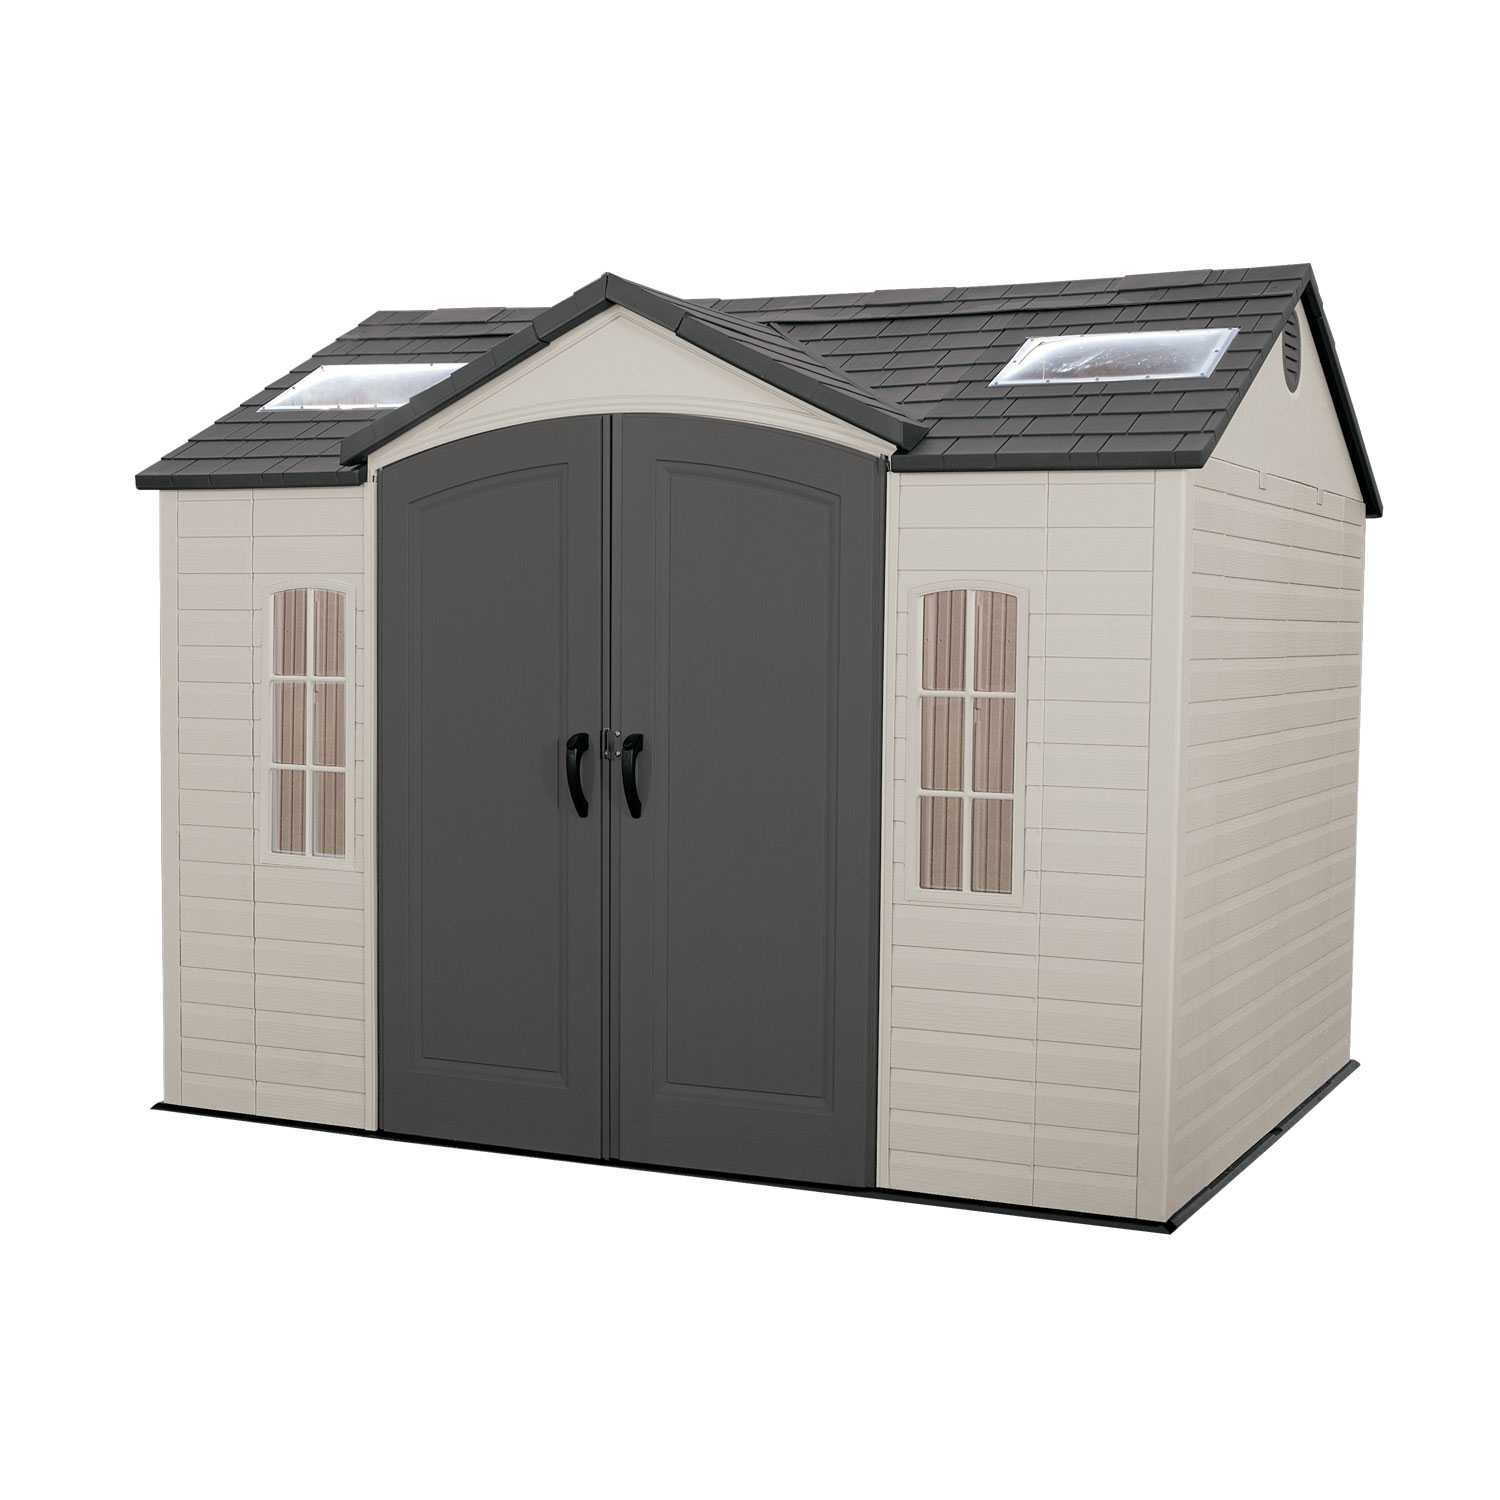 Lifetime 10x8 Plastic Shed Greenhouse Stores